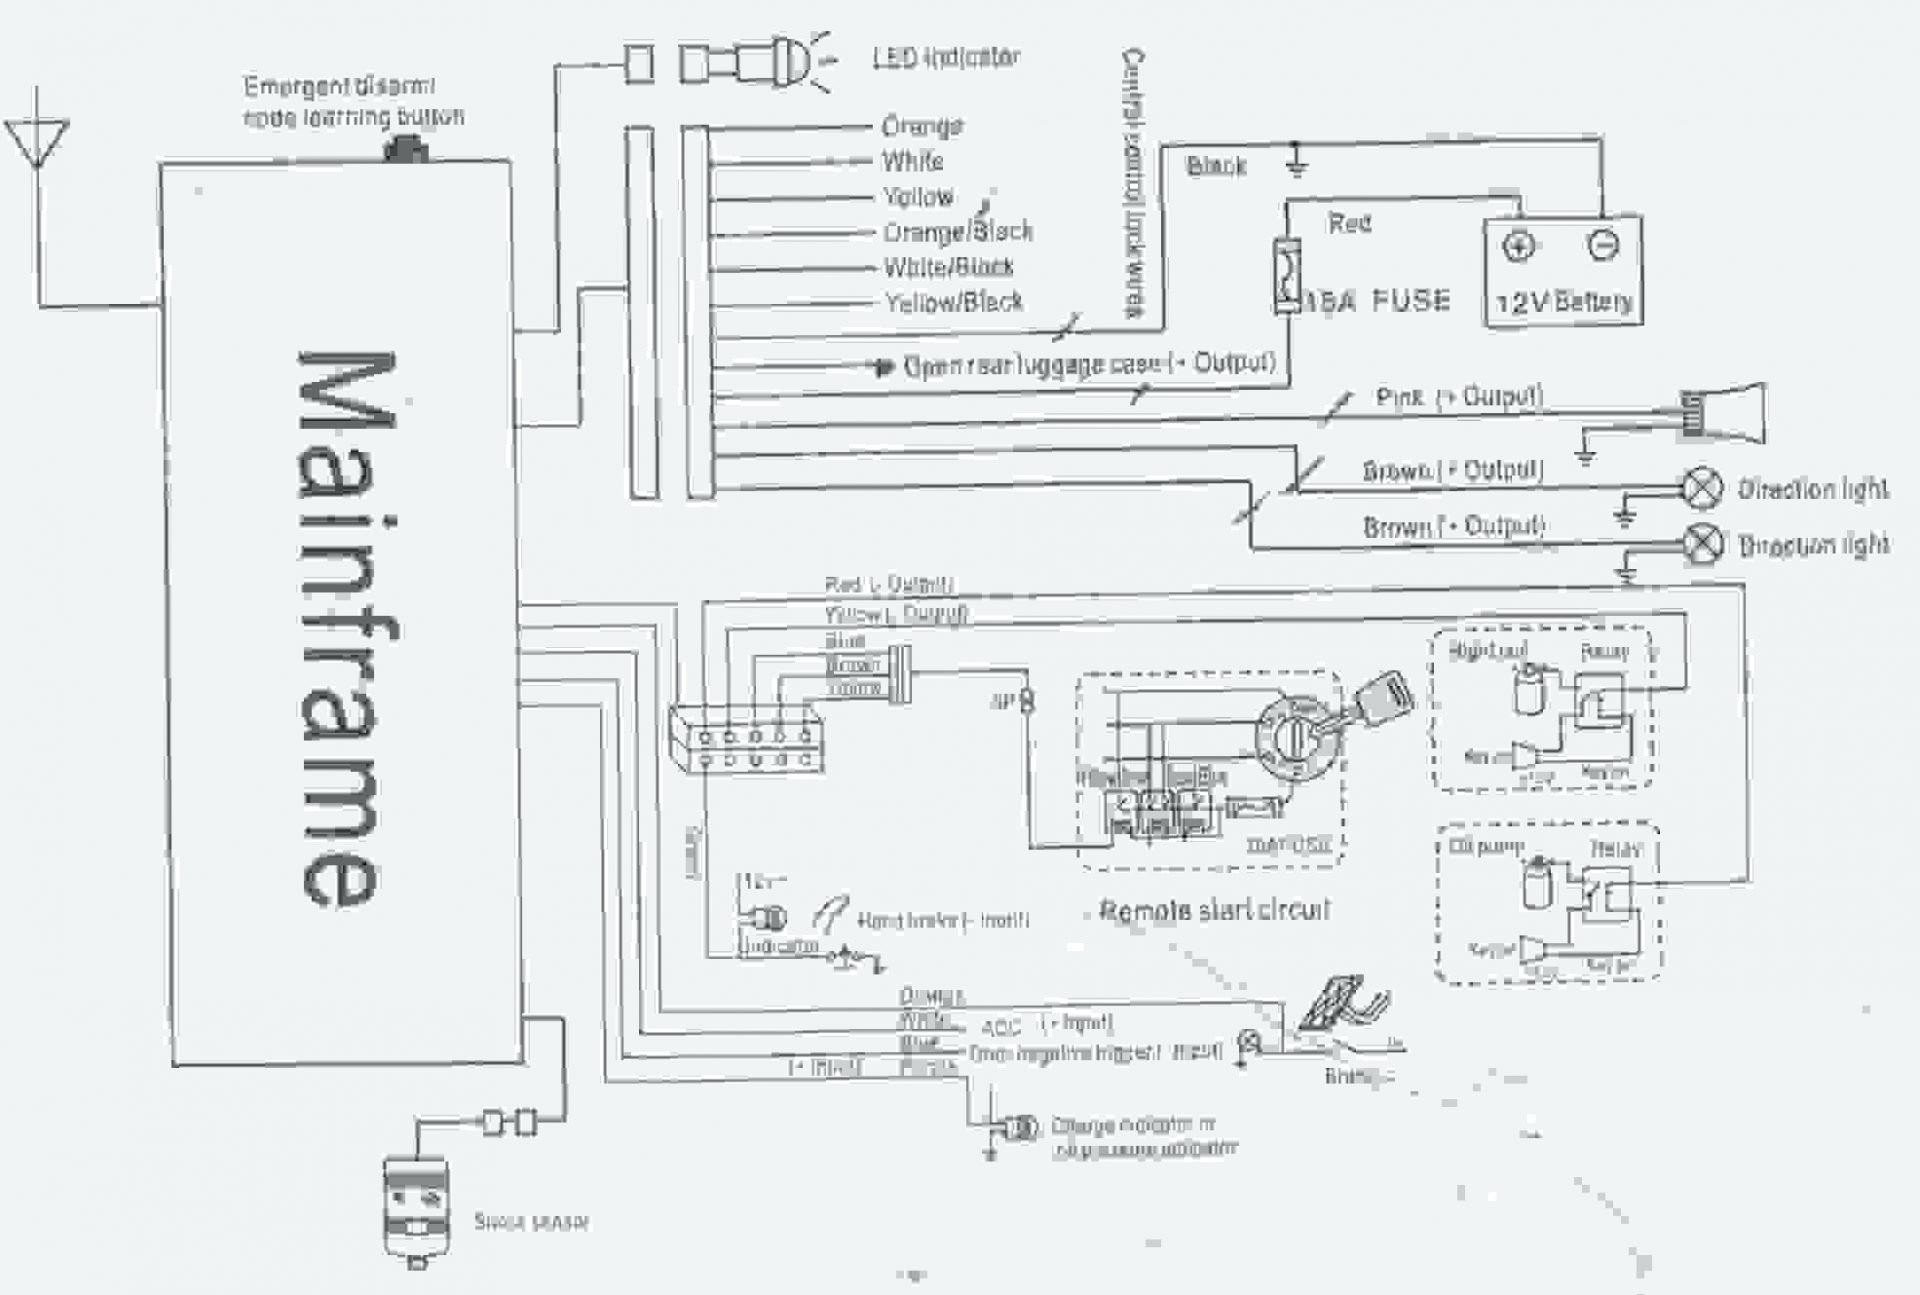 Viper 3105V Wiring Diagram For Your Needs